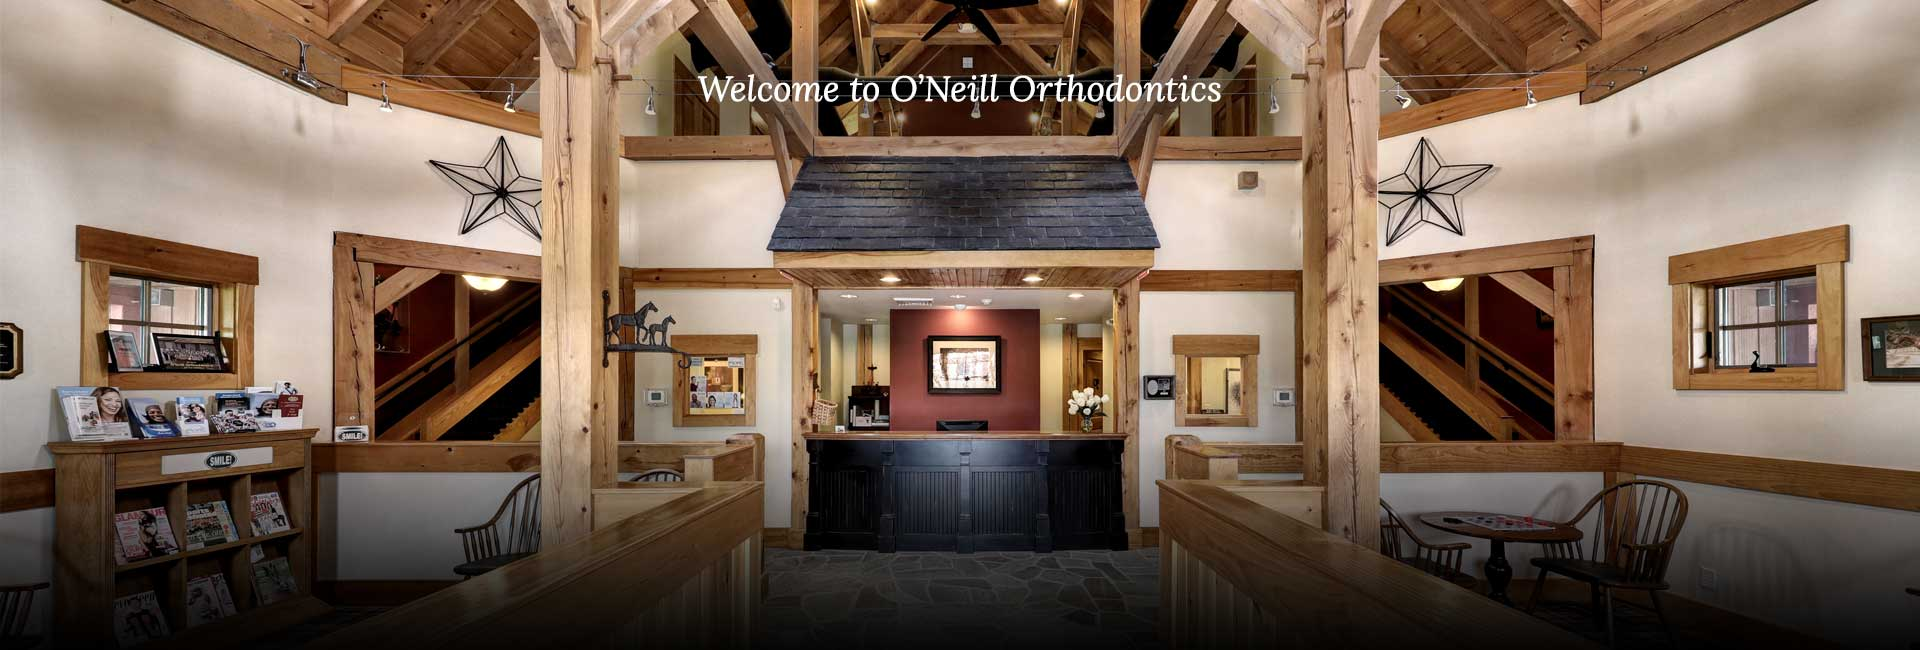 Welcome to O'Neill Orthodontics O'Neill Orthodontics New Freedom, PA